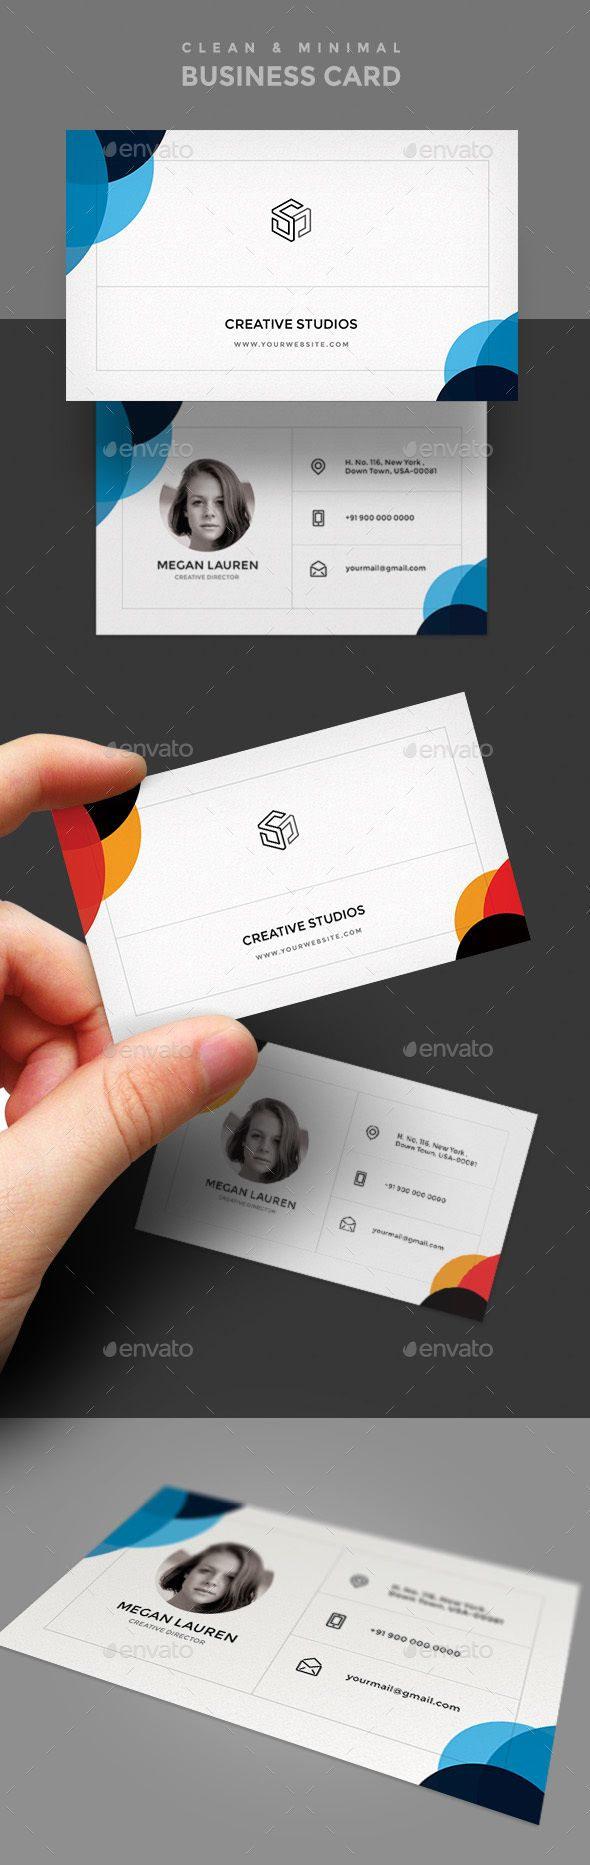 Business Card Template - Creative Business Cards Download here ...